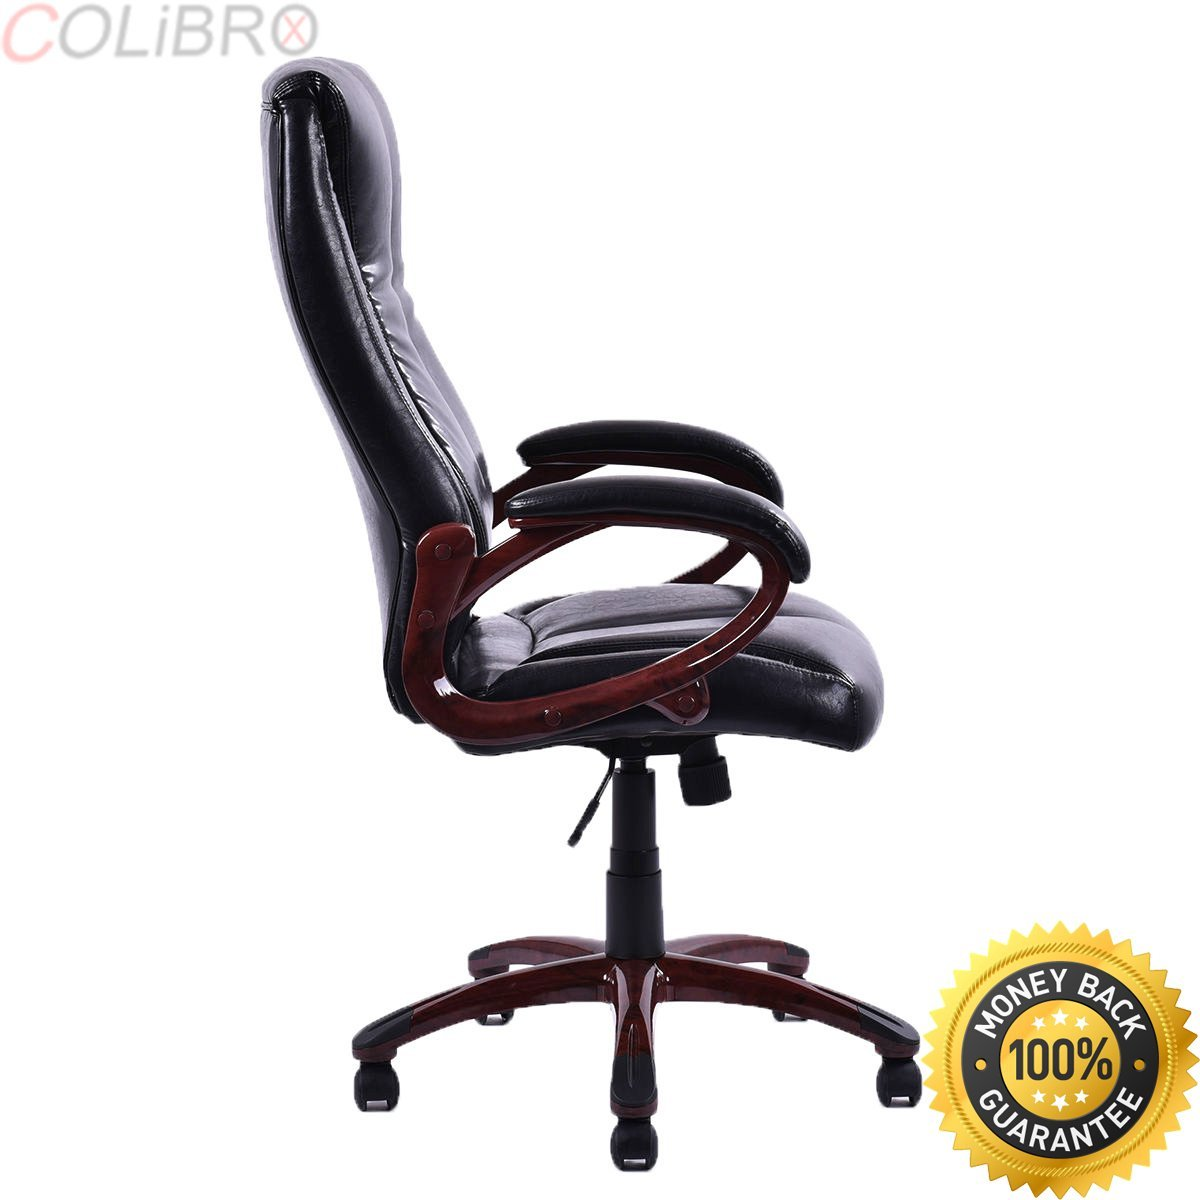 COLIBROX--Ergonomic PU Leather Office Chair High Back Swivel Executive Desk Task Black New. ergonomic office chair with lumbar support. ergonomic chair reviewsergonomic chair reviews. office chairs.